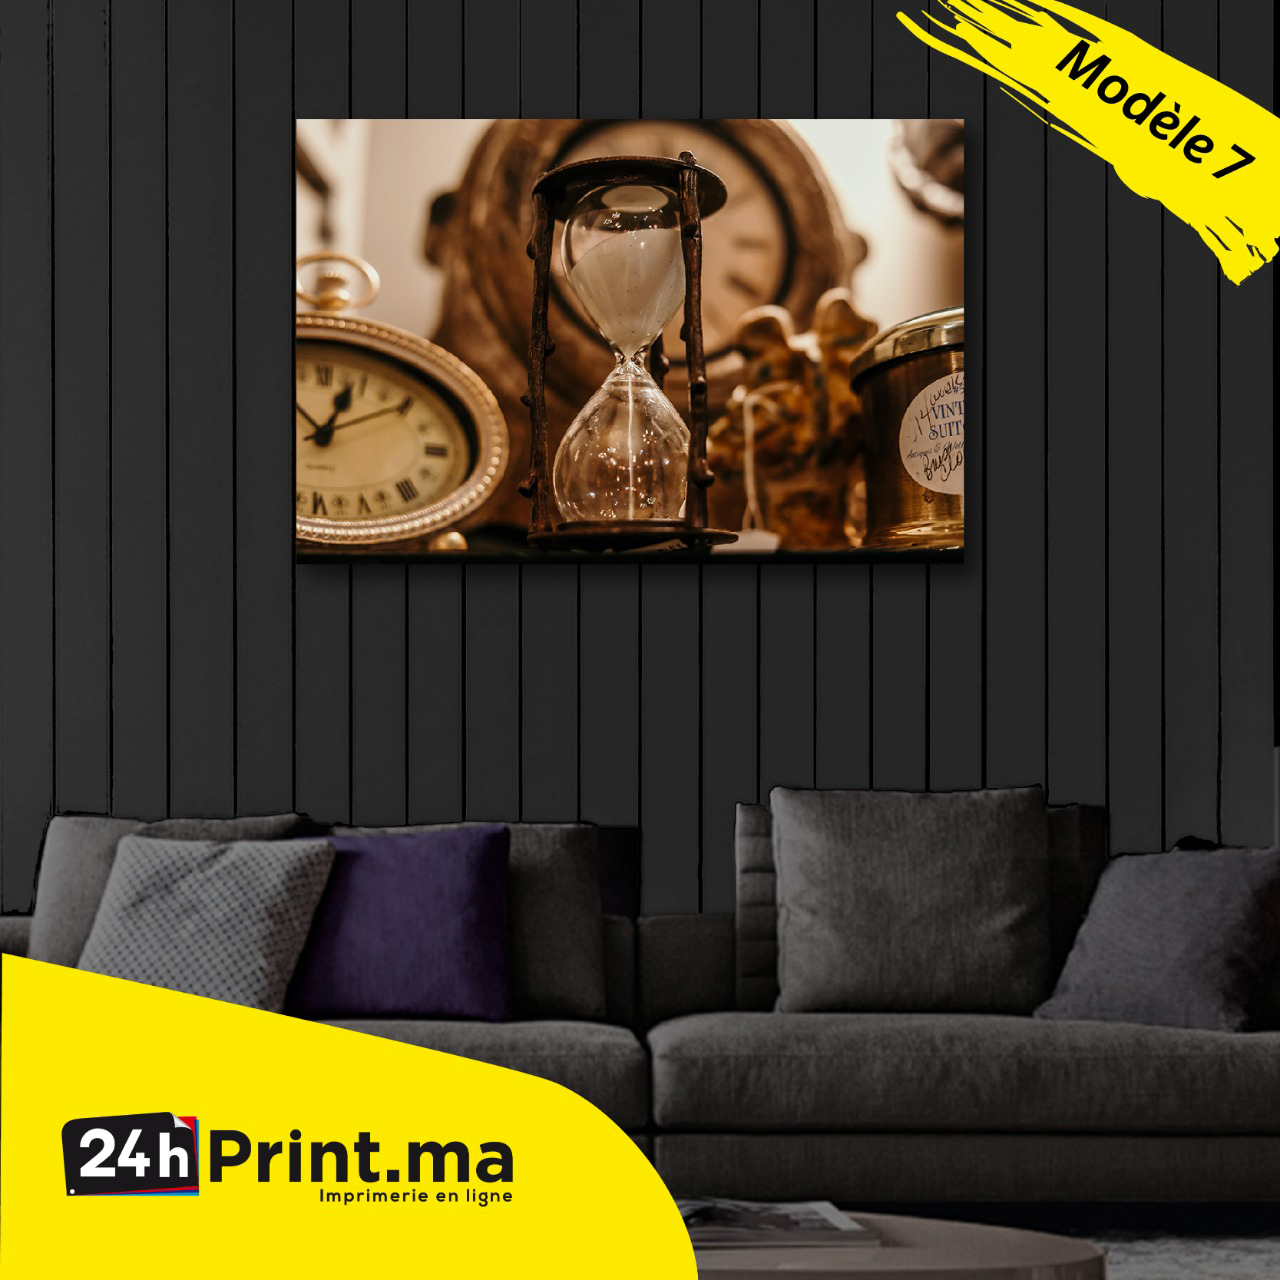 https://www.24hprint.ma/images/products_gallery_images/785.jpg